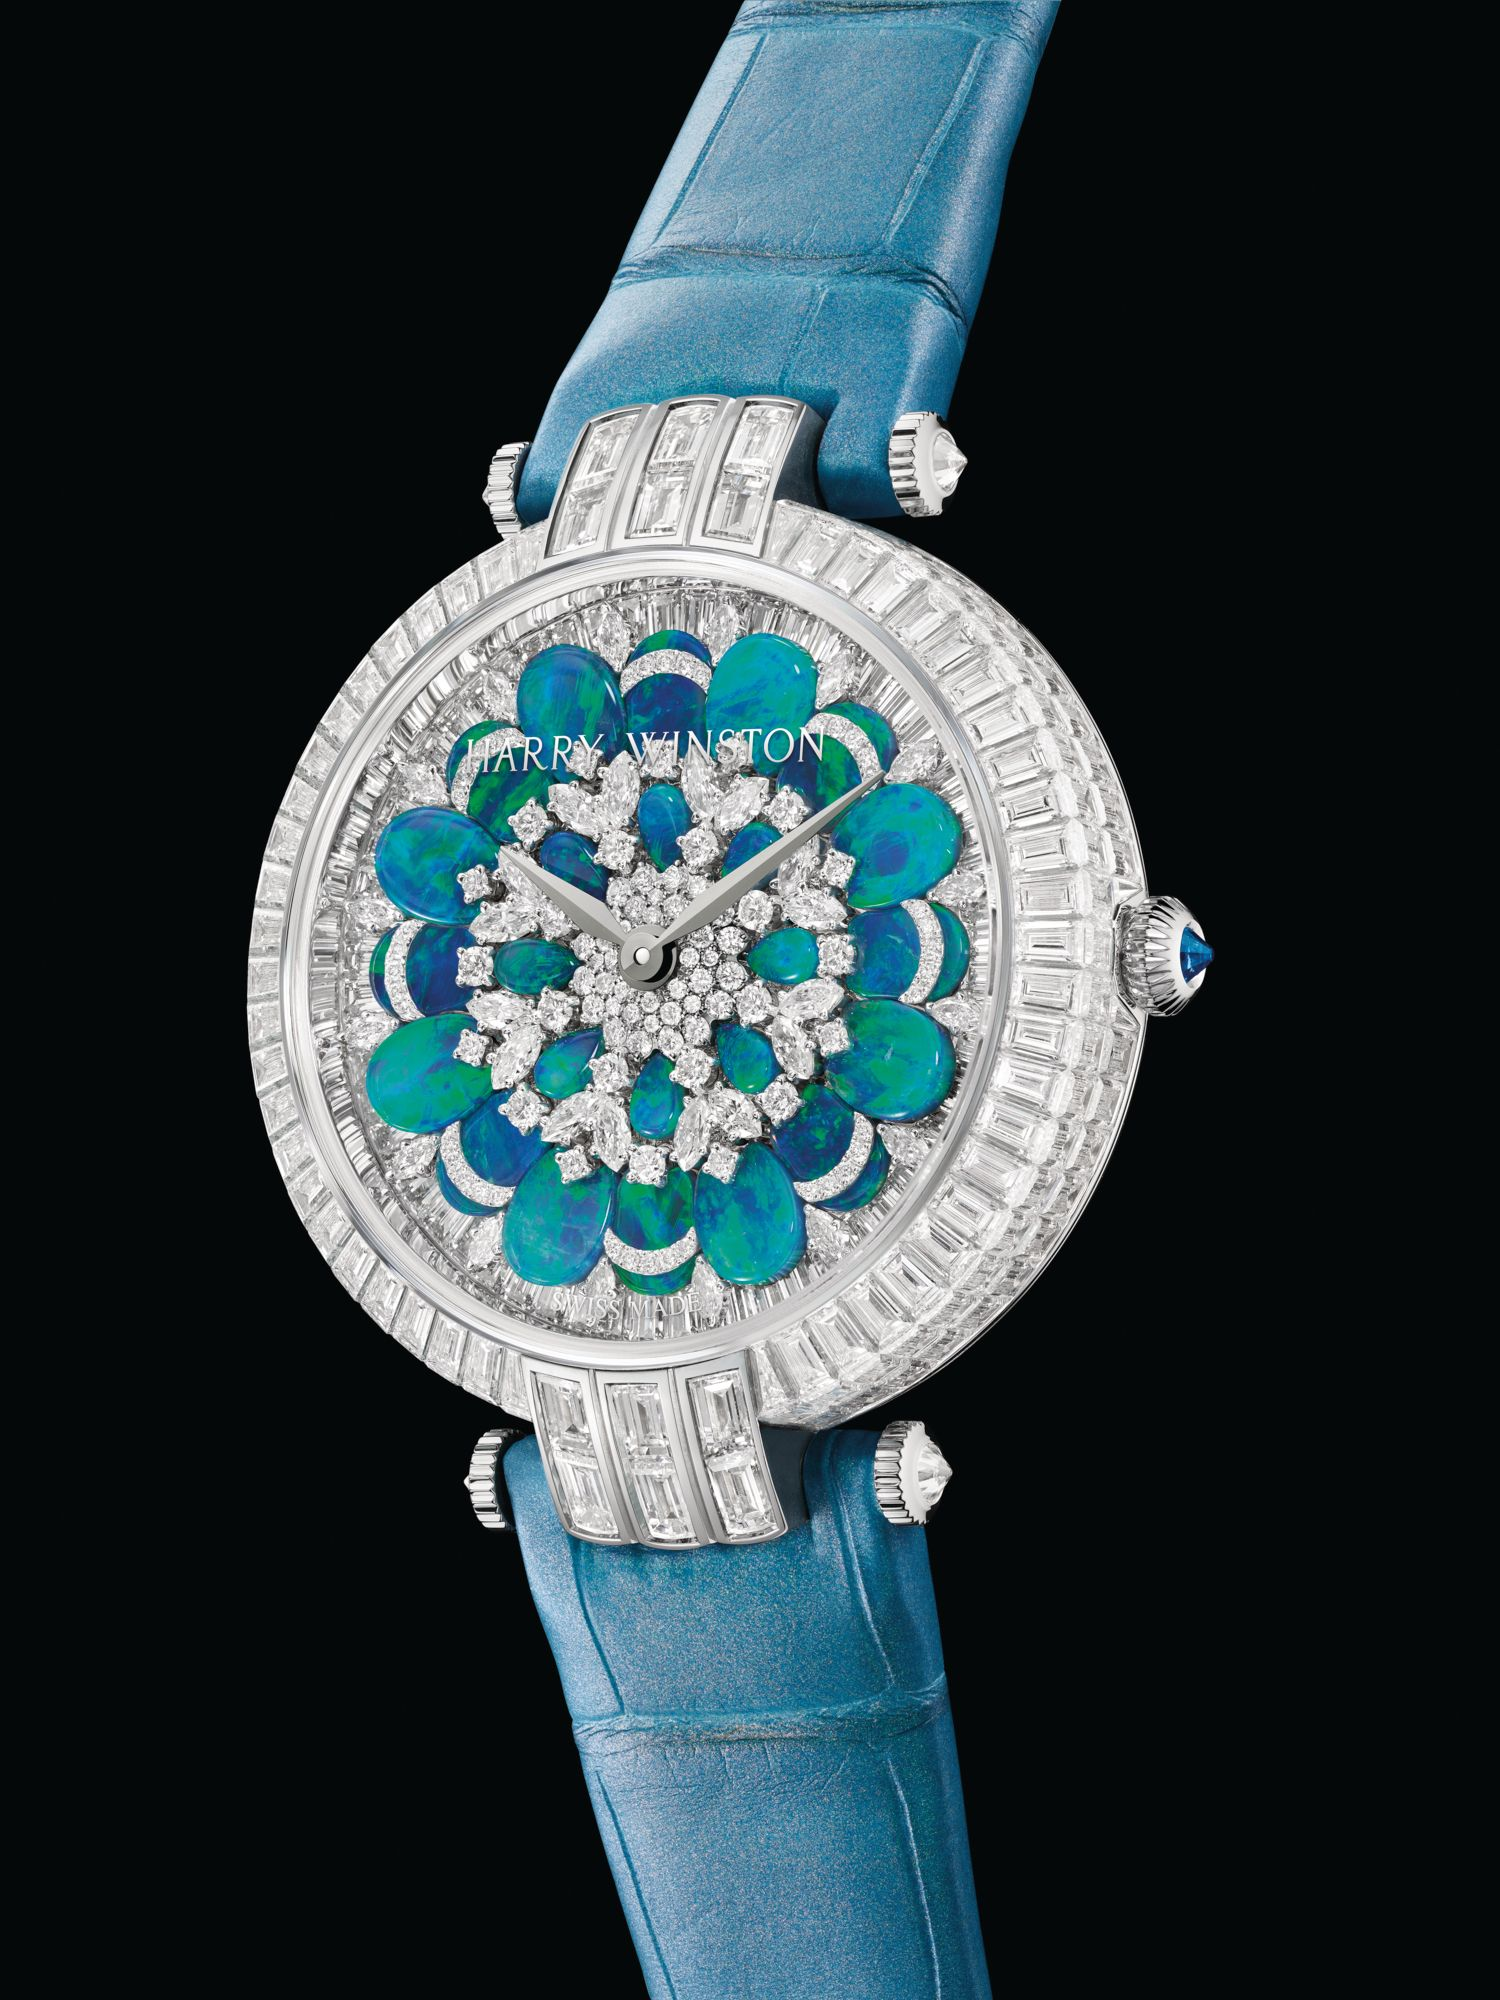 3 New Luxury Watches To Add To Your Collection